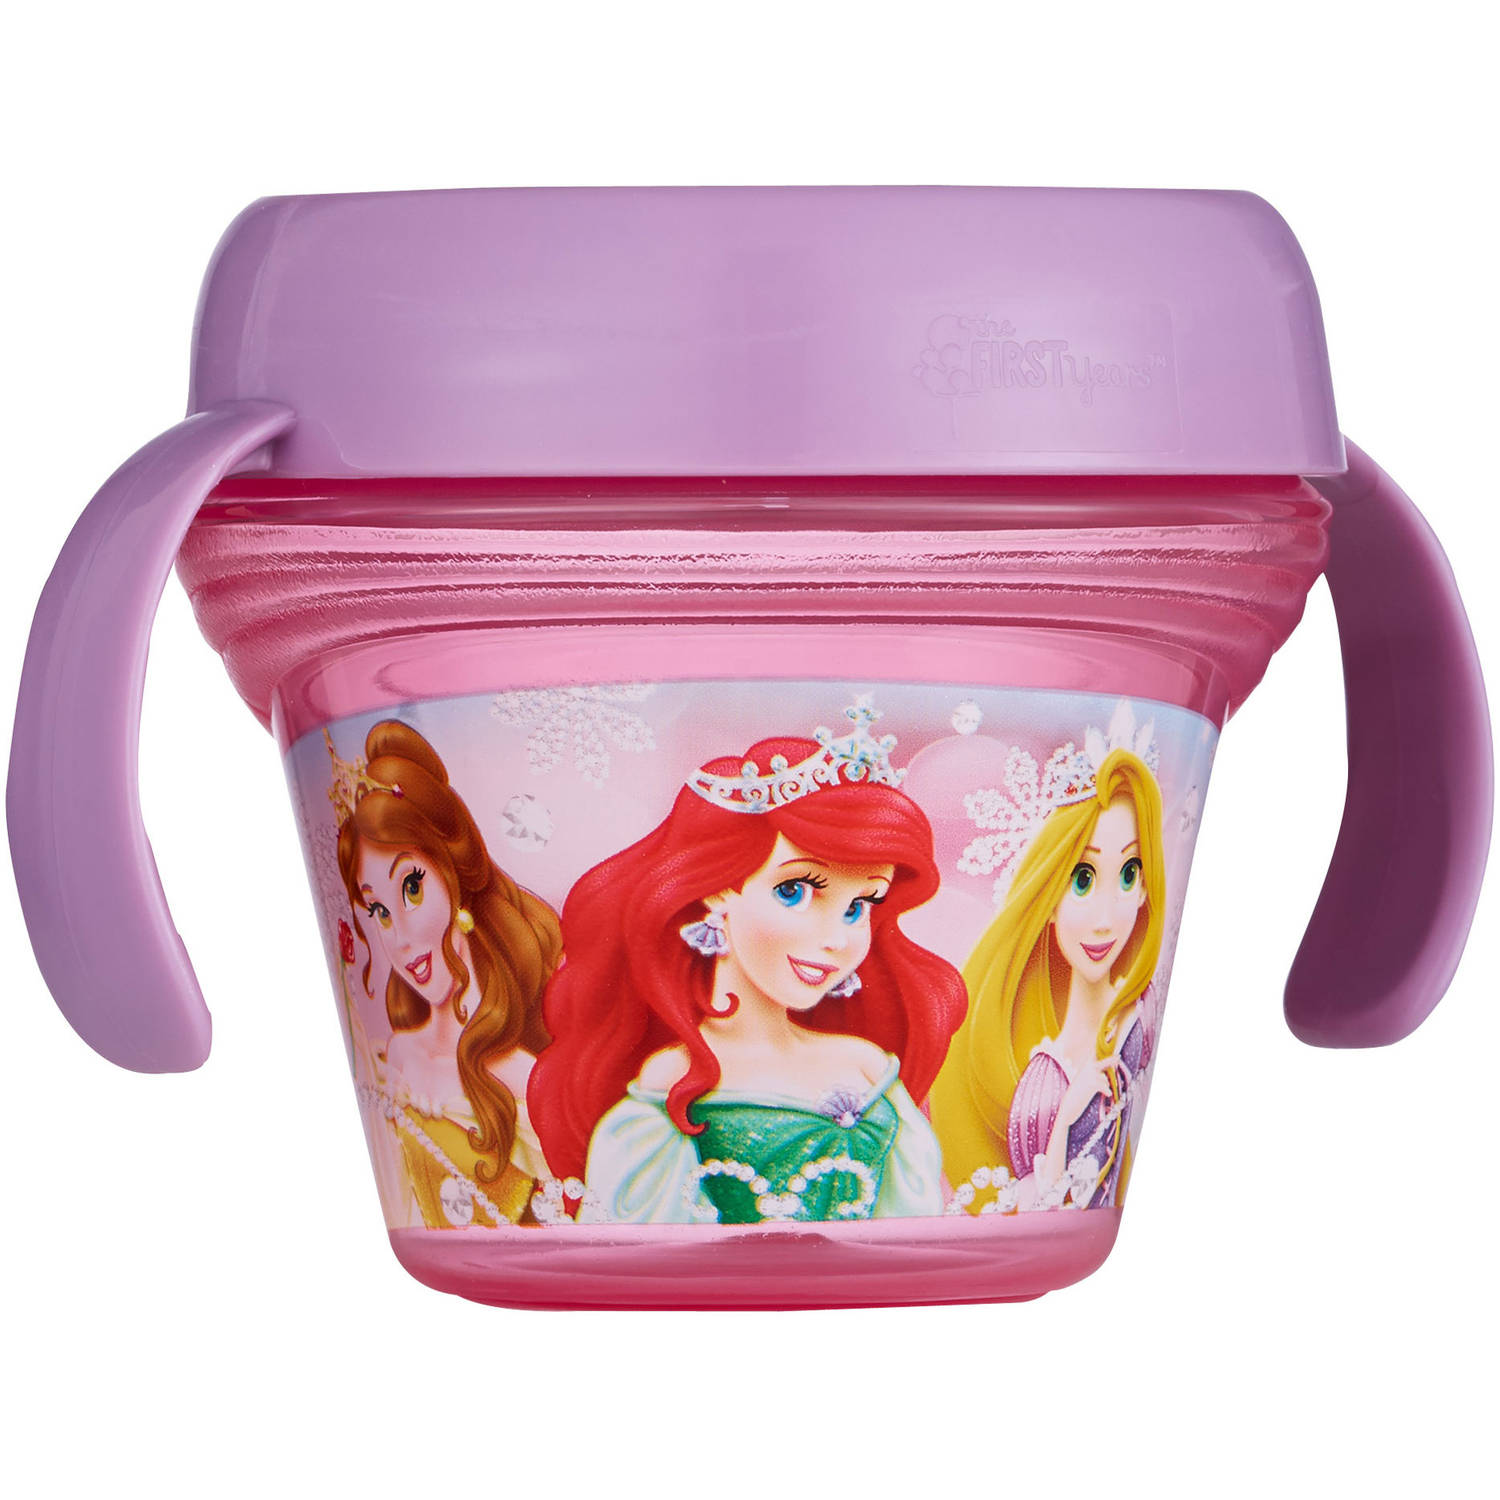 The First Years Disney Princess Spill-Proof Snack Bowl